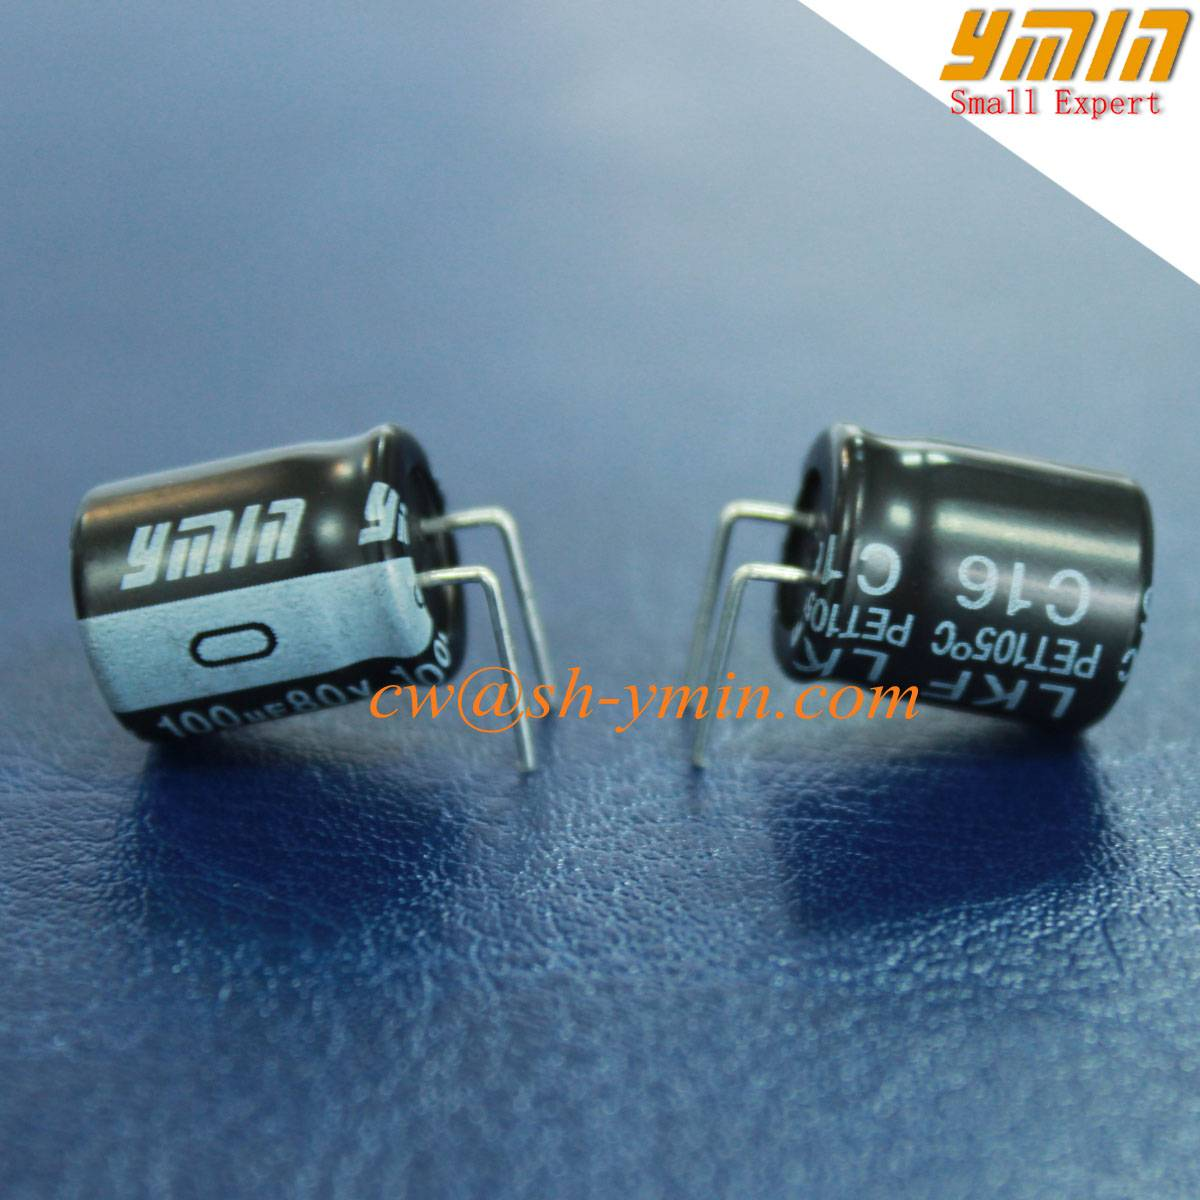 105°C 100uf  80V Capacitor Radial lead Aluminum Electrolytic Capacitor for General Purpose